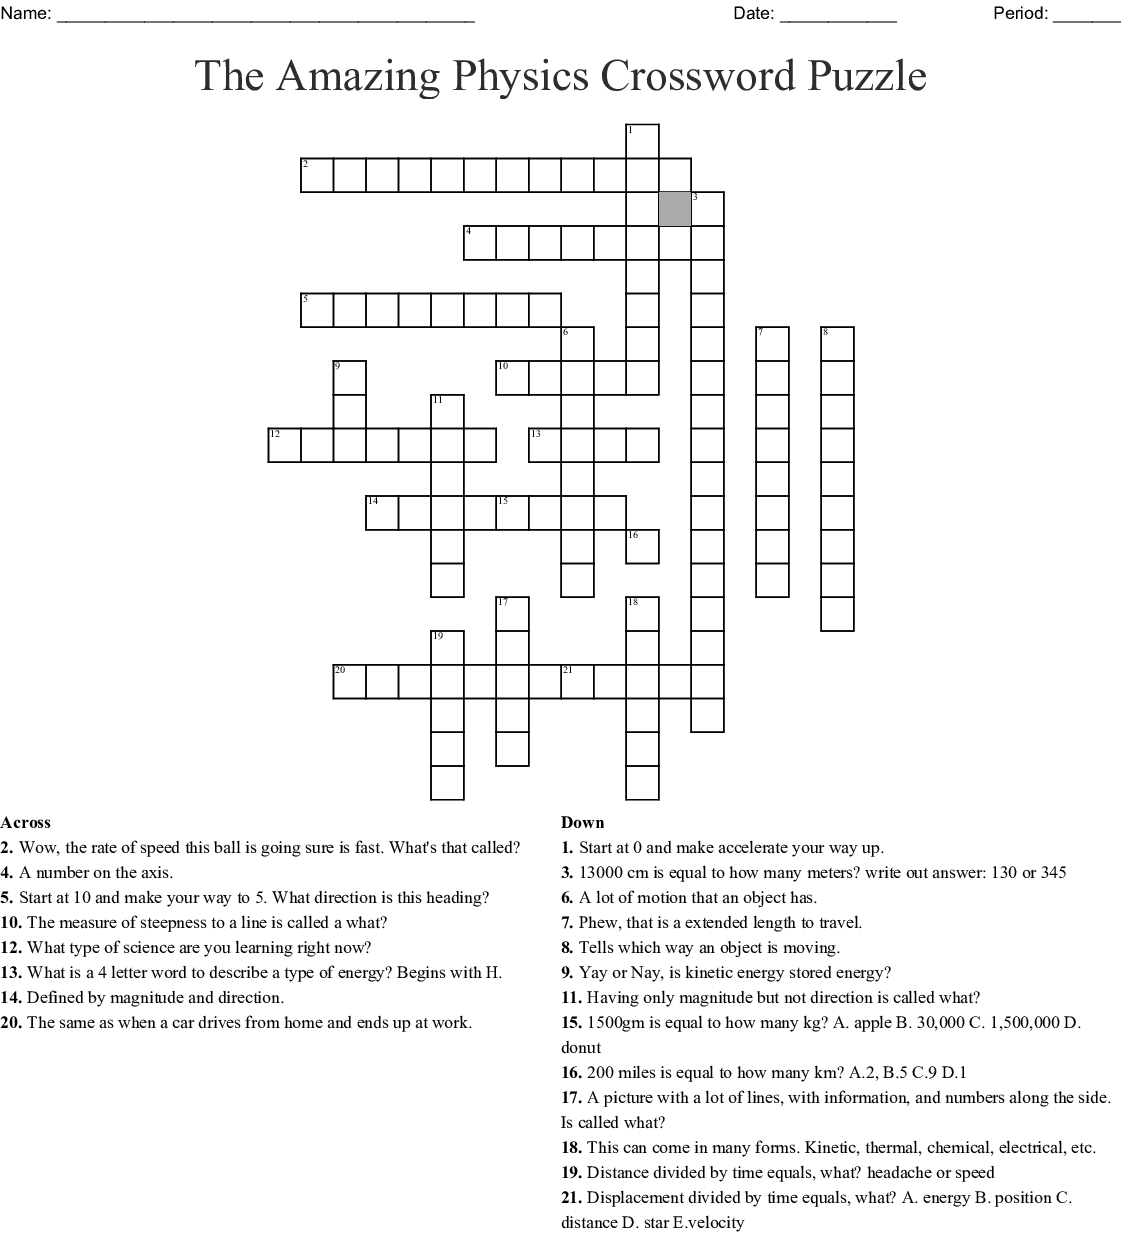 The Amazing Physics Crossword Puzzle Crossword - Wordmint - Physics Crossword Puzzles Printable With Answers